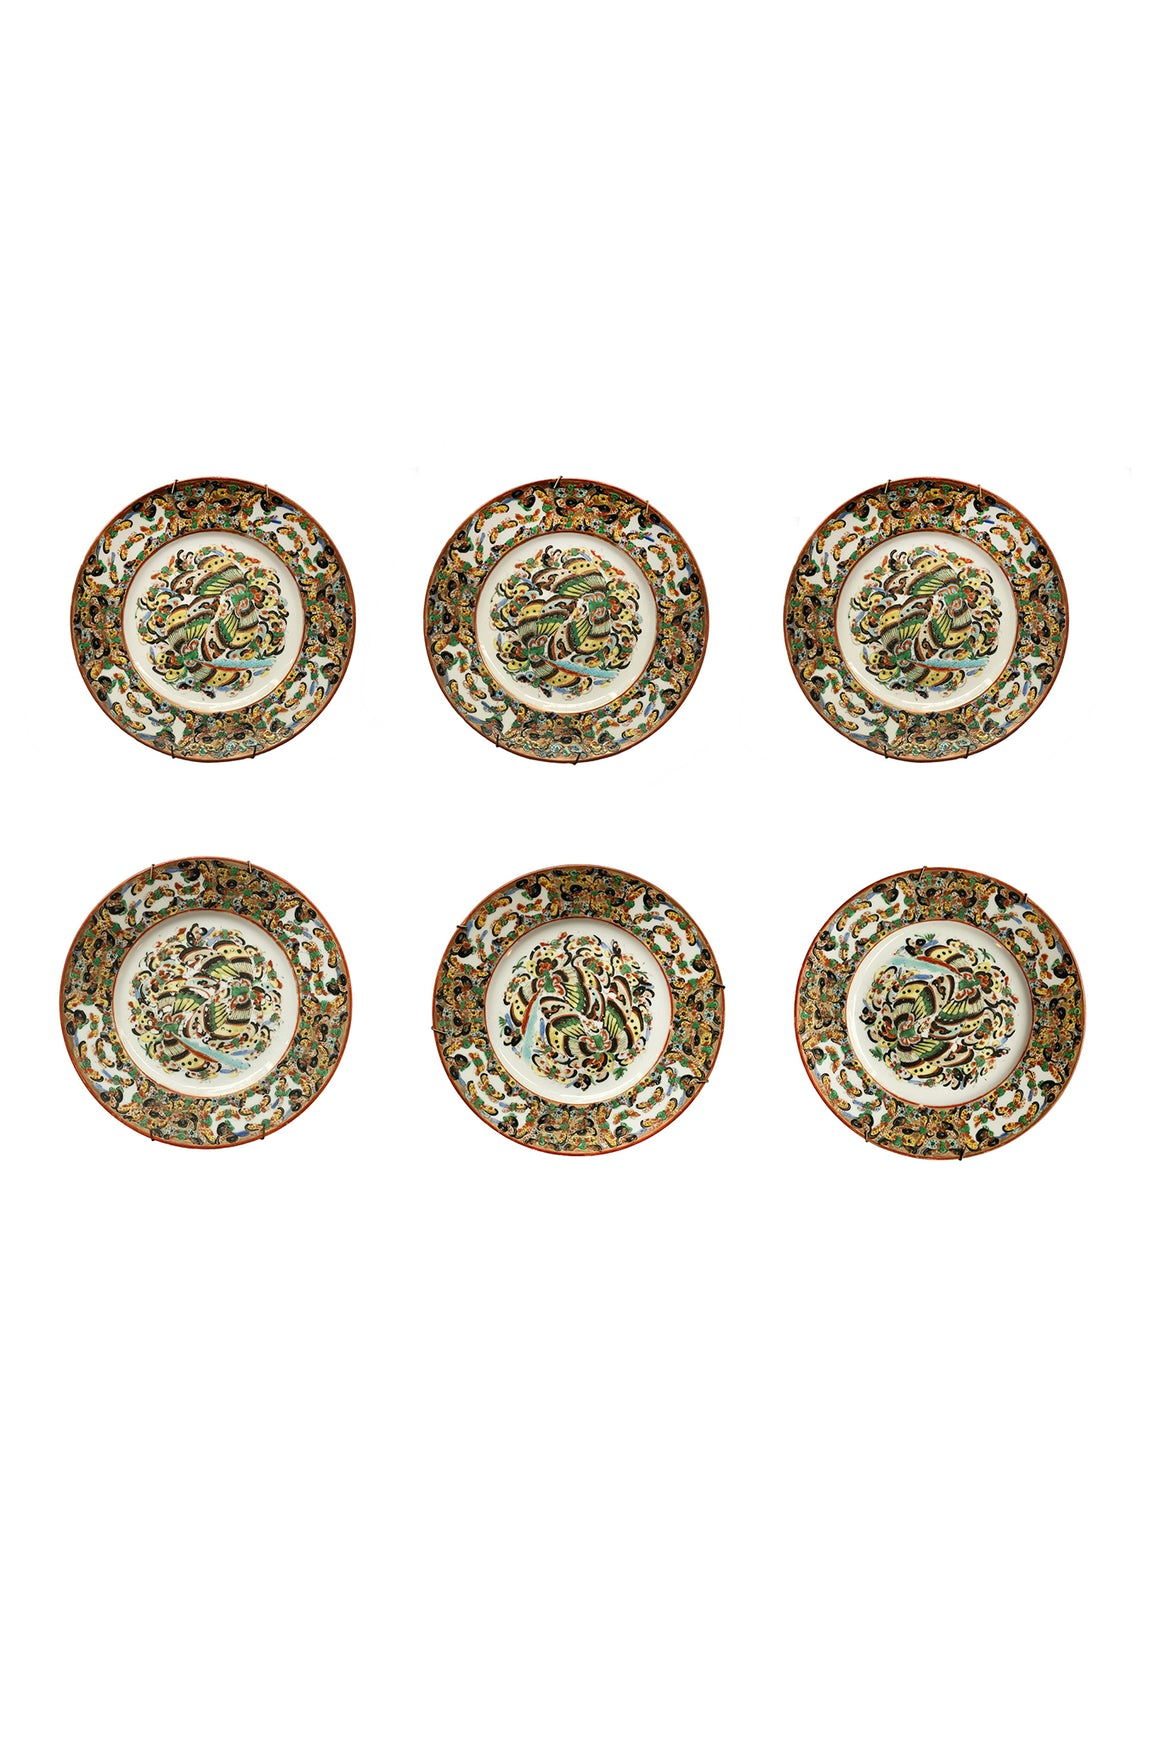 20th Century Chinese Decorative Plates - a Set of 6